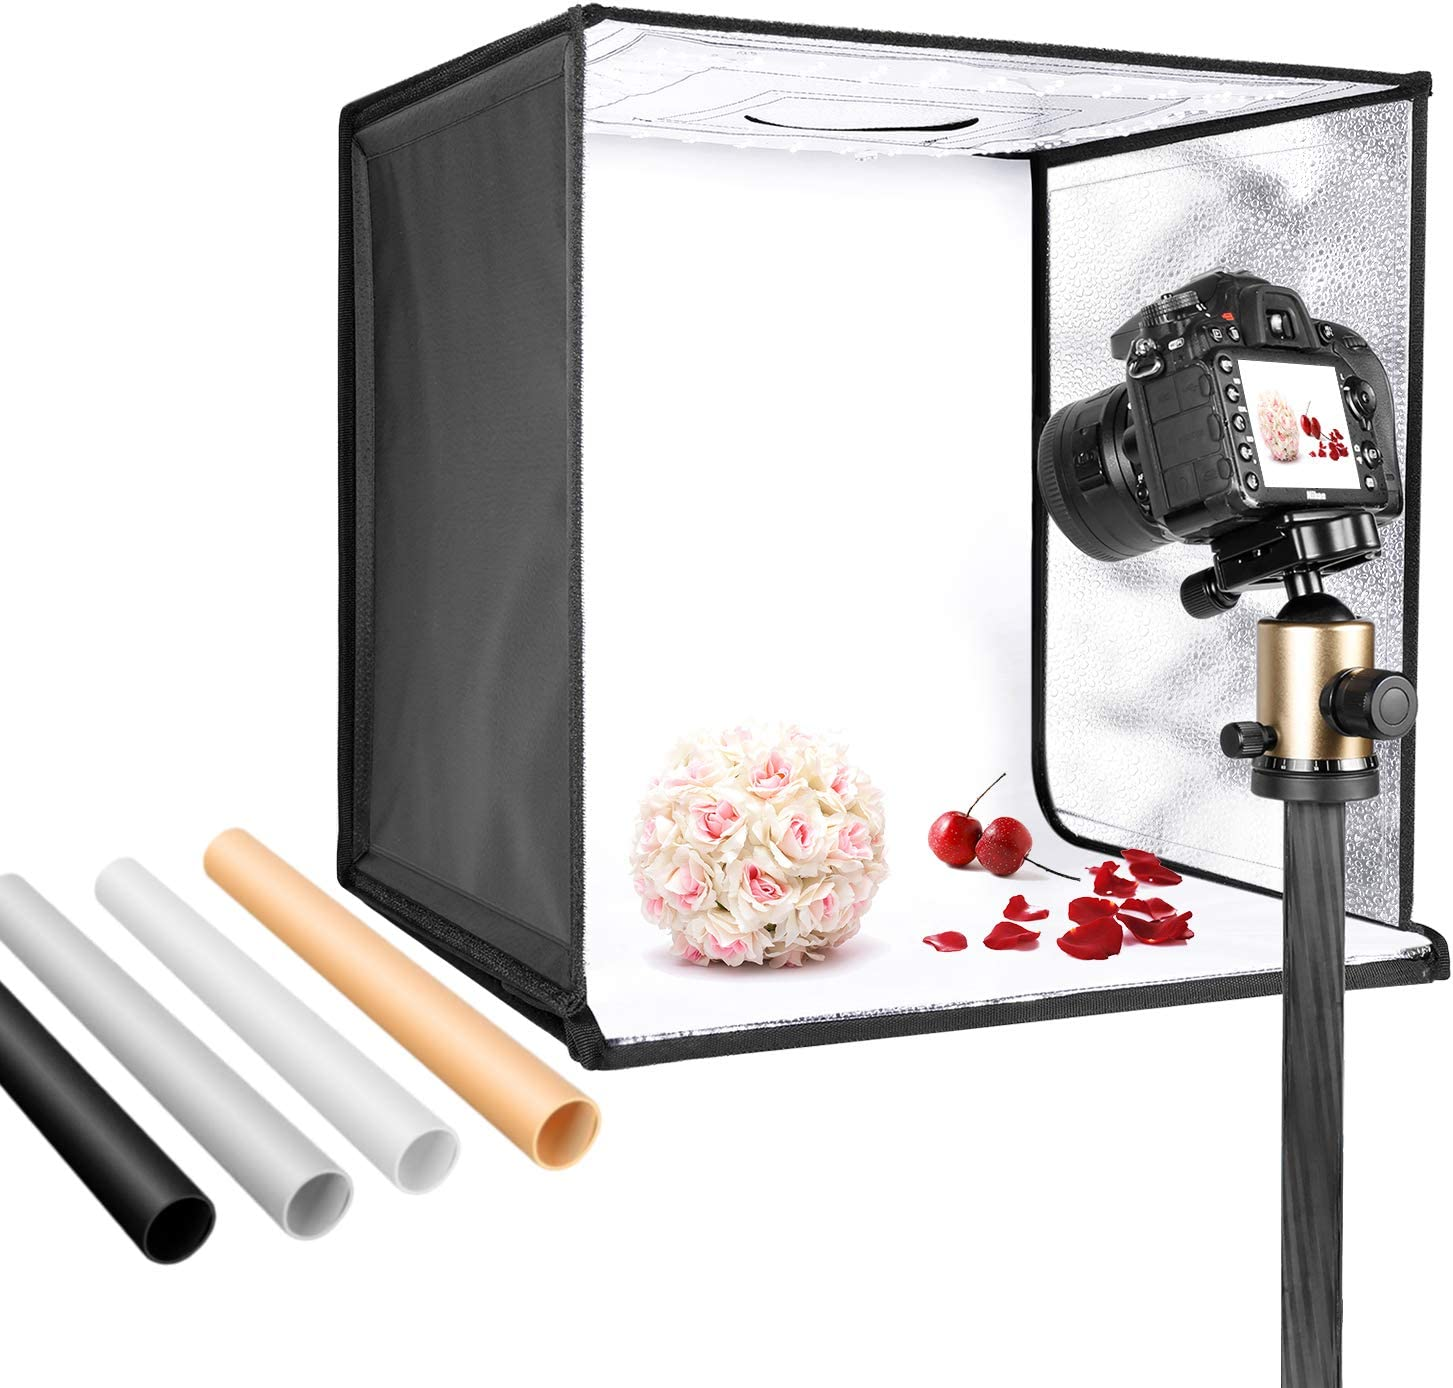 Neewer Photo Studio Light Box 16inches/40cm Shooting Light Tent Adjustable Brightness Foldable Portable Professional Booth Table Top Photography Lighting Kit 120 LED Lights 4 Colors Backdrops